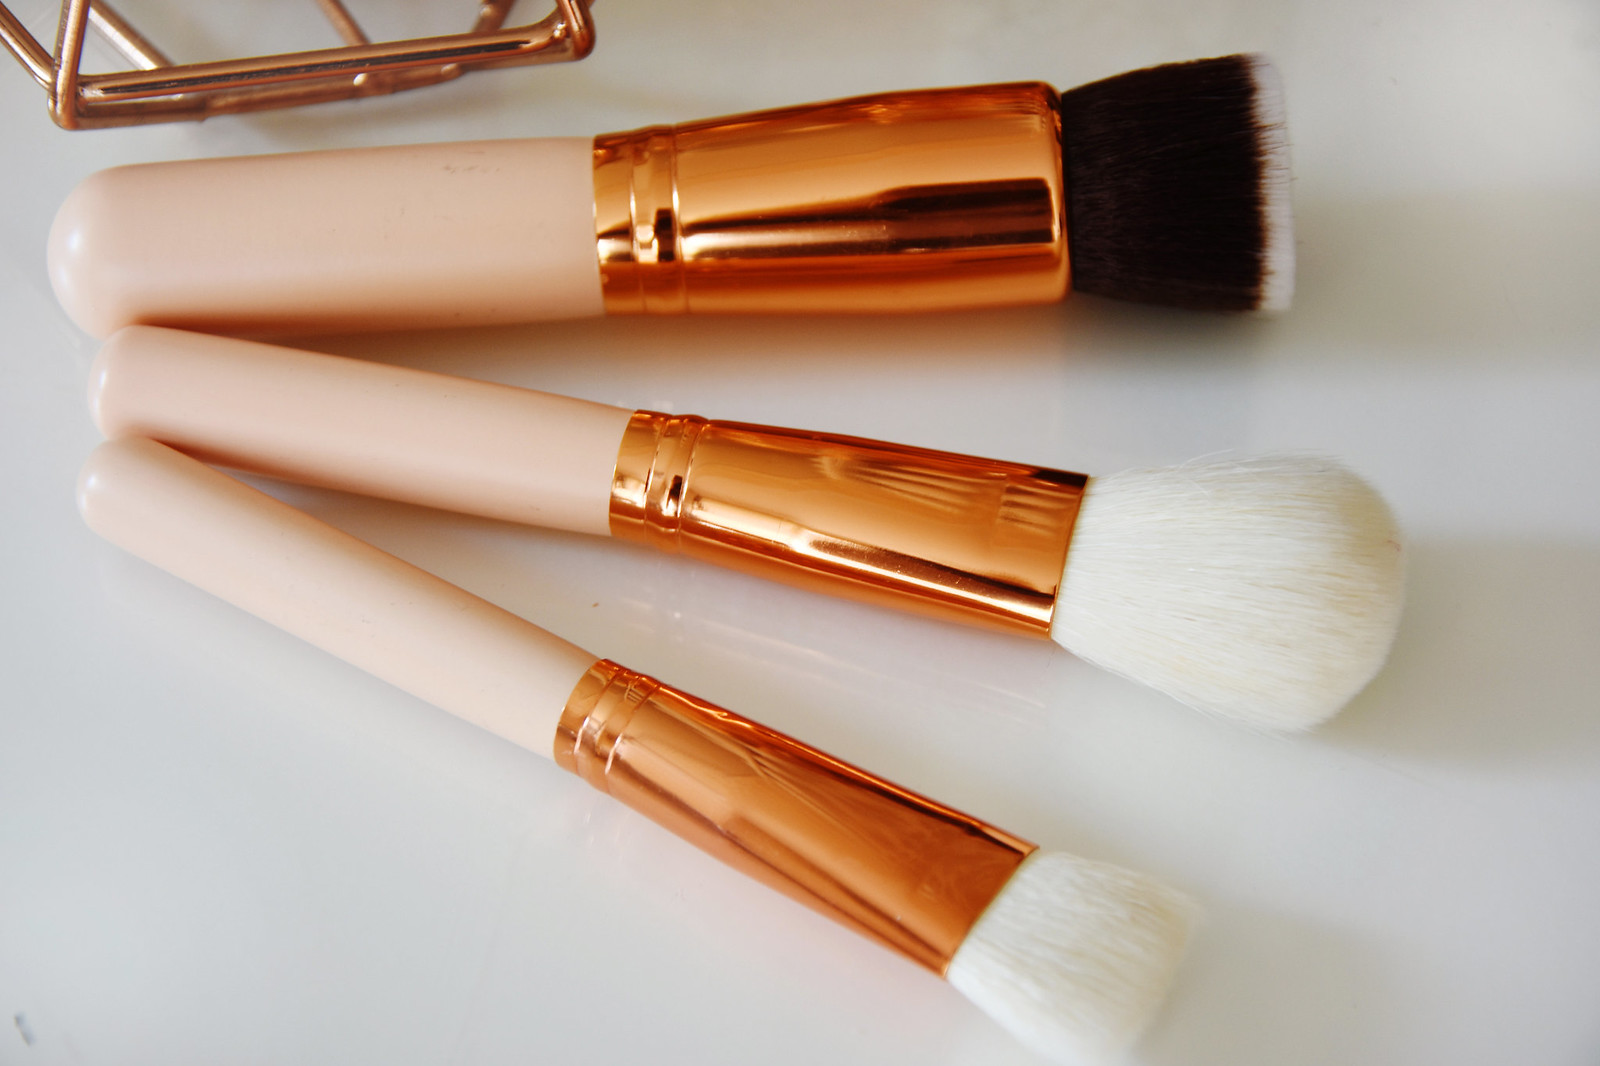 Makeup brushes bought on Ebay